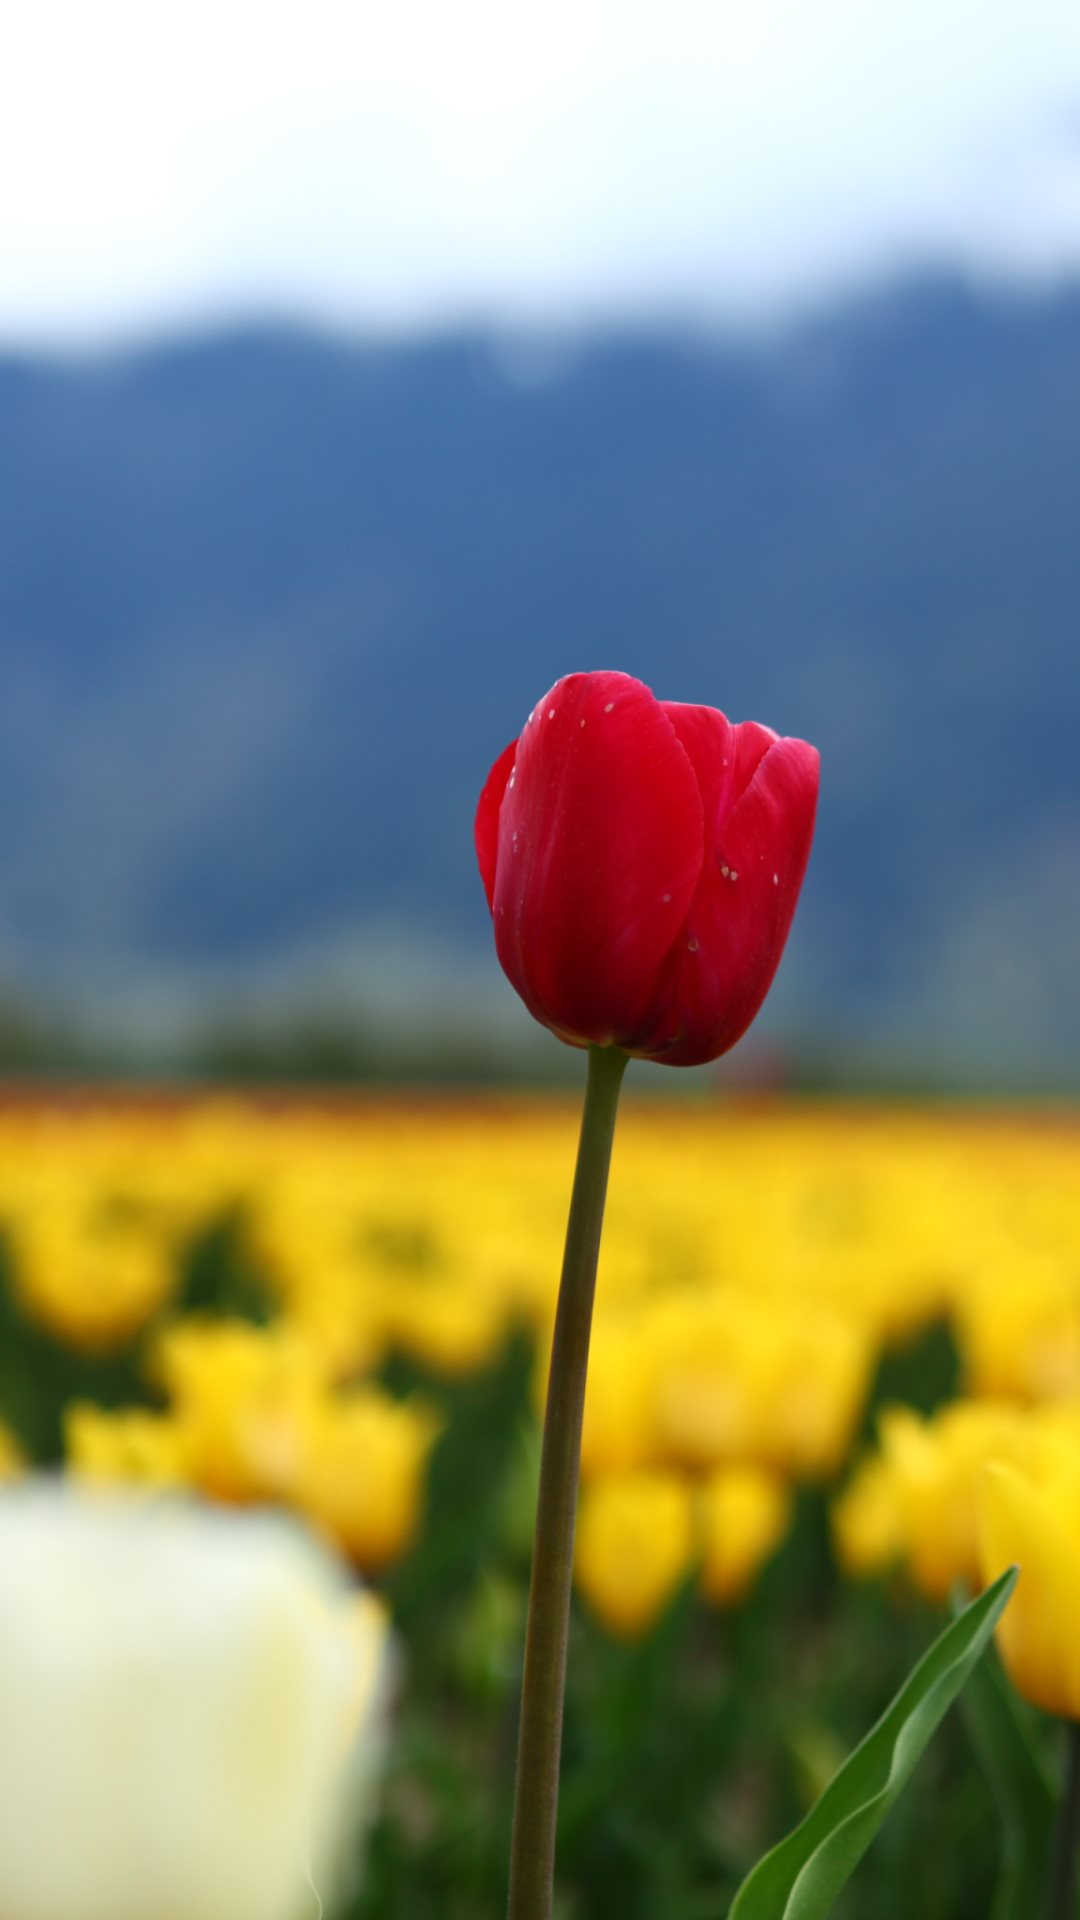 Red tulip htc one wallpaper